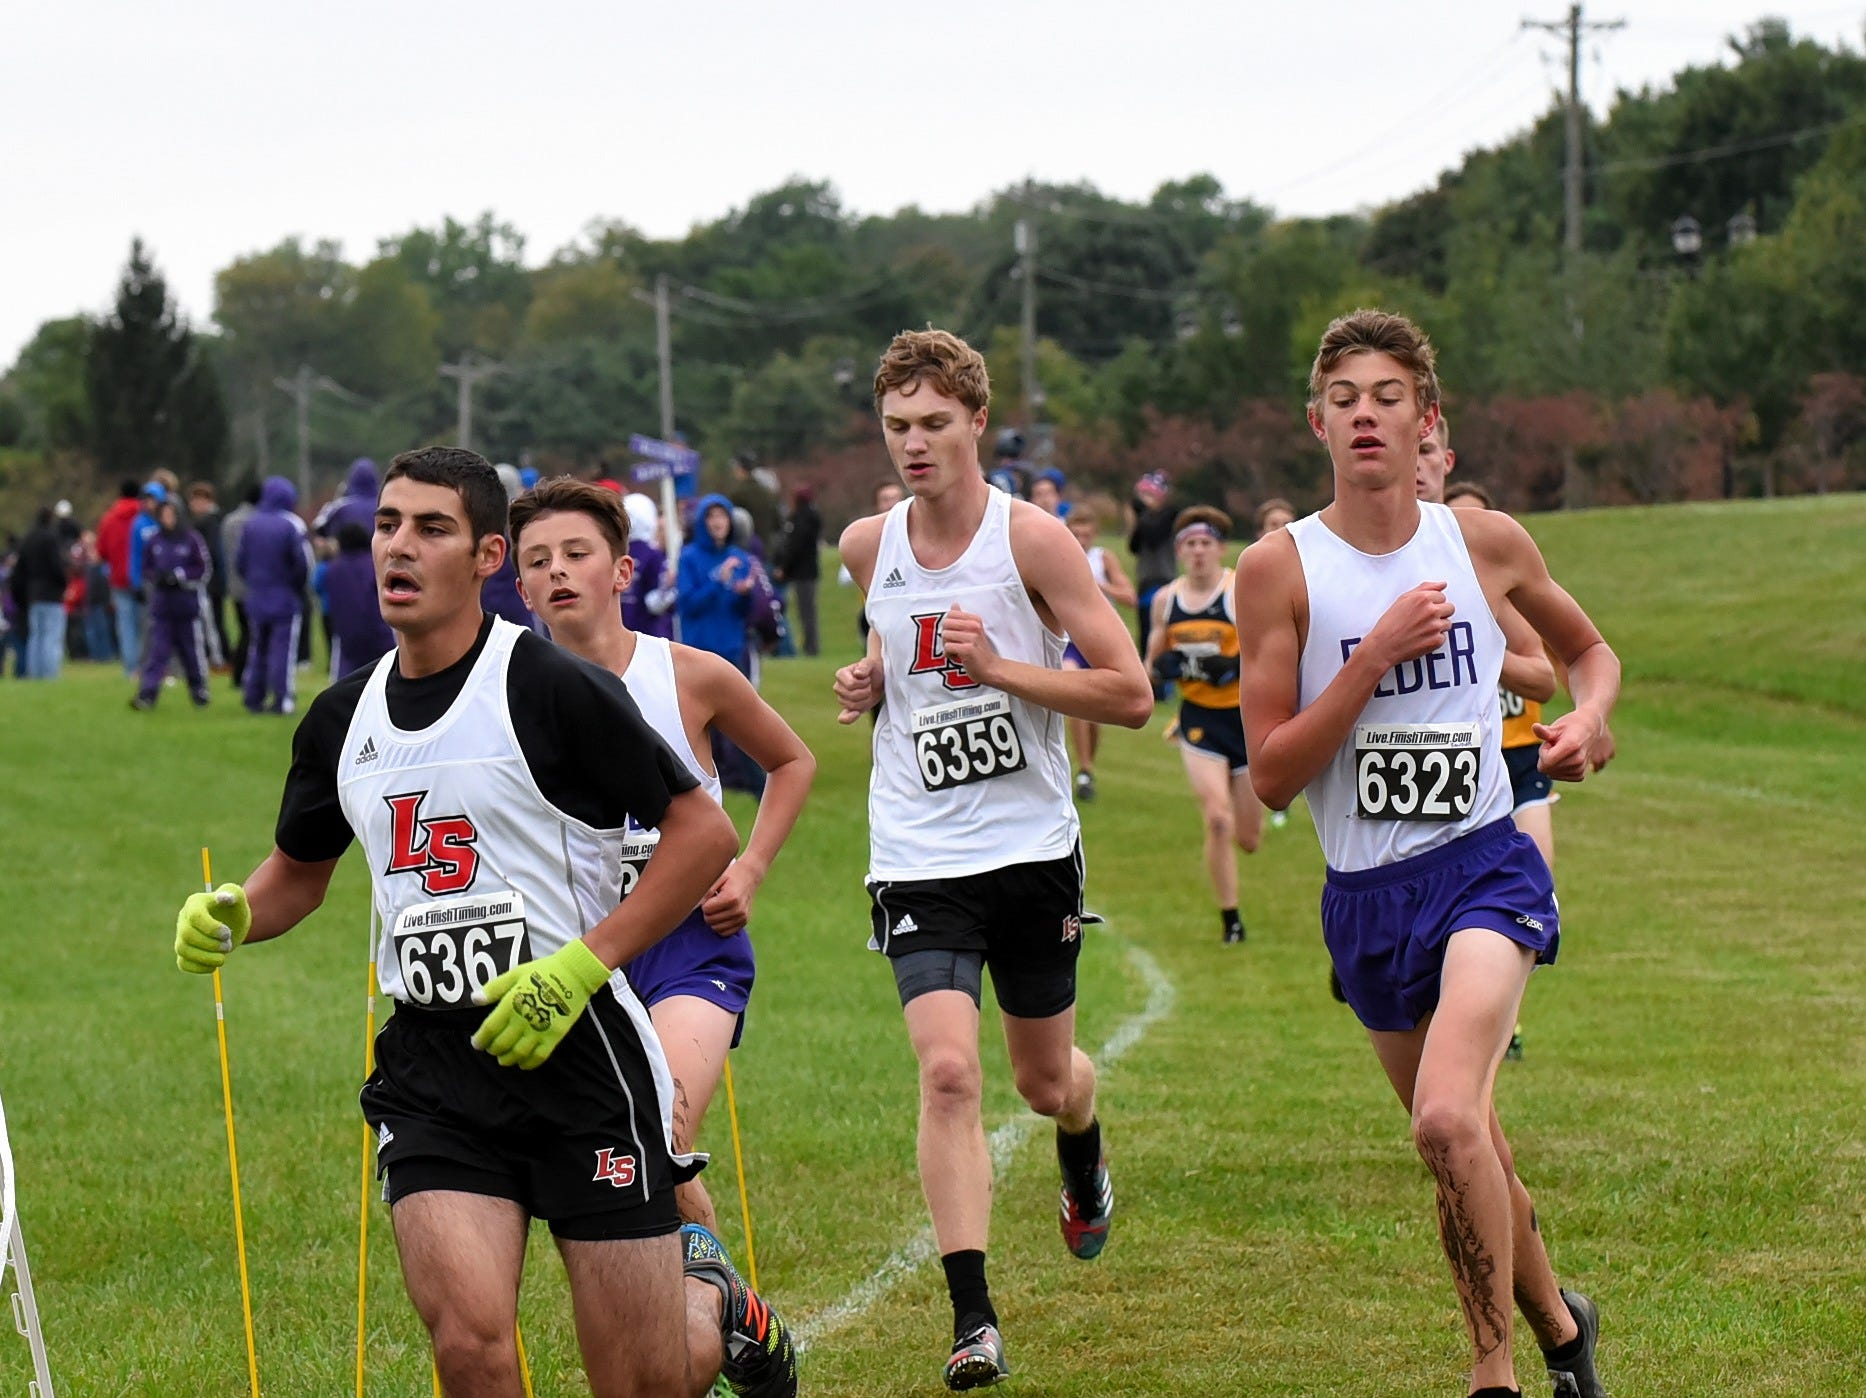 Mark Waters and Joe Marshall of La Salle join Elder's Andrew Sander taking a hard turn at the 2018 GCL/GGCL Cross Country Championships, October 13, 2018.